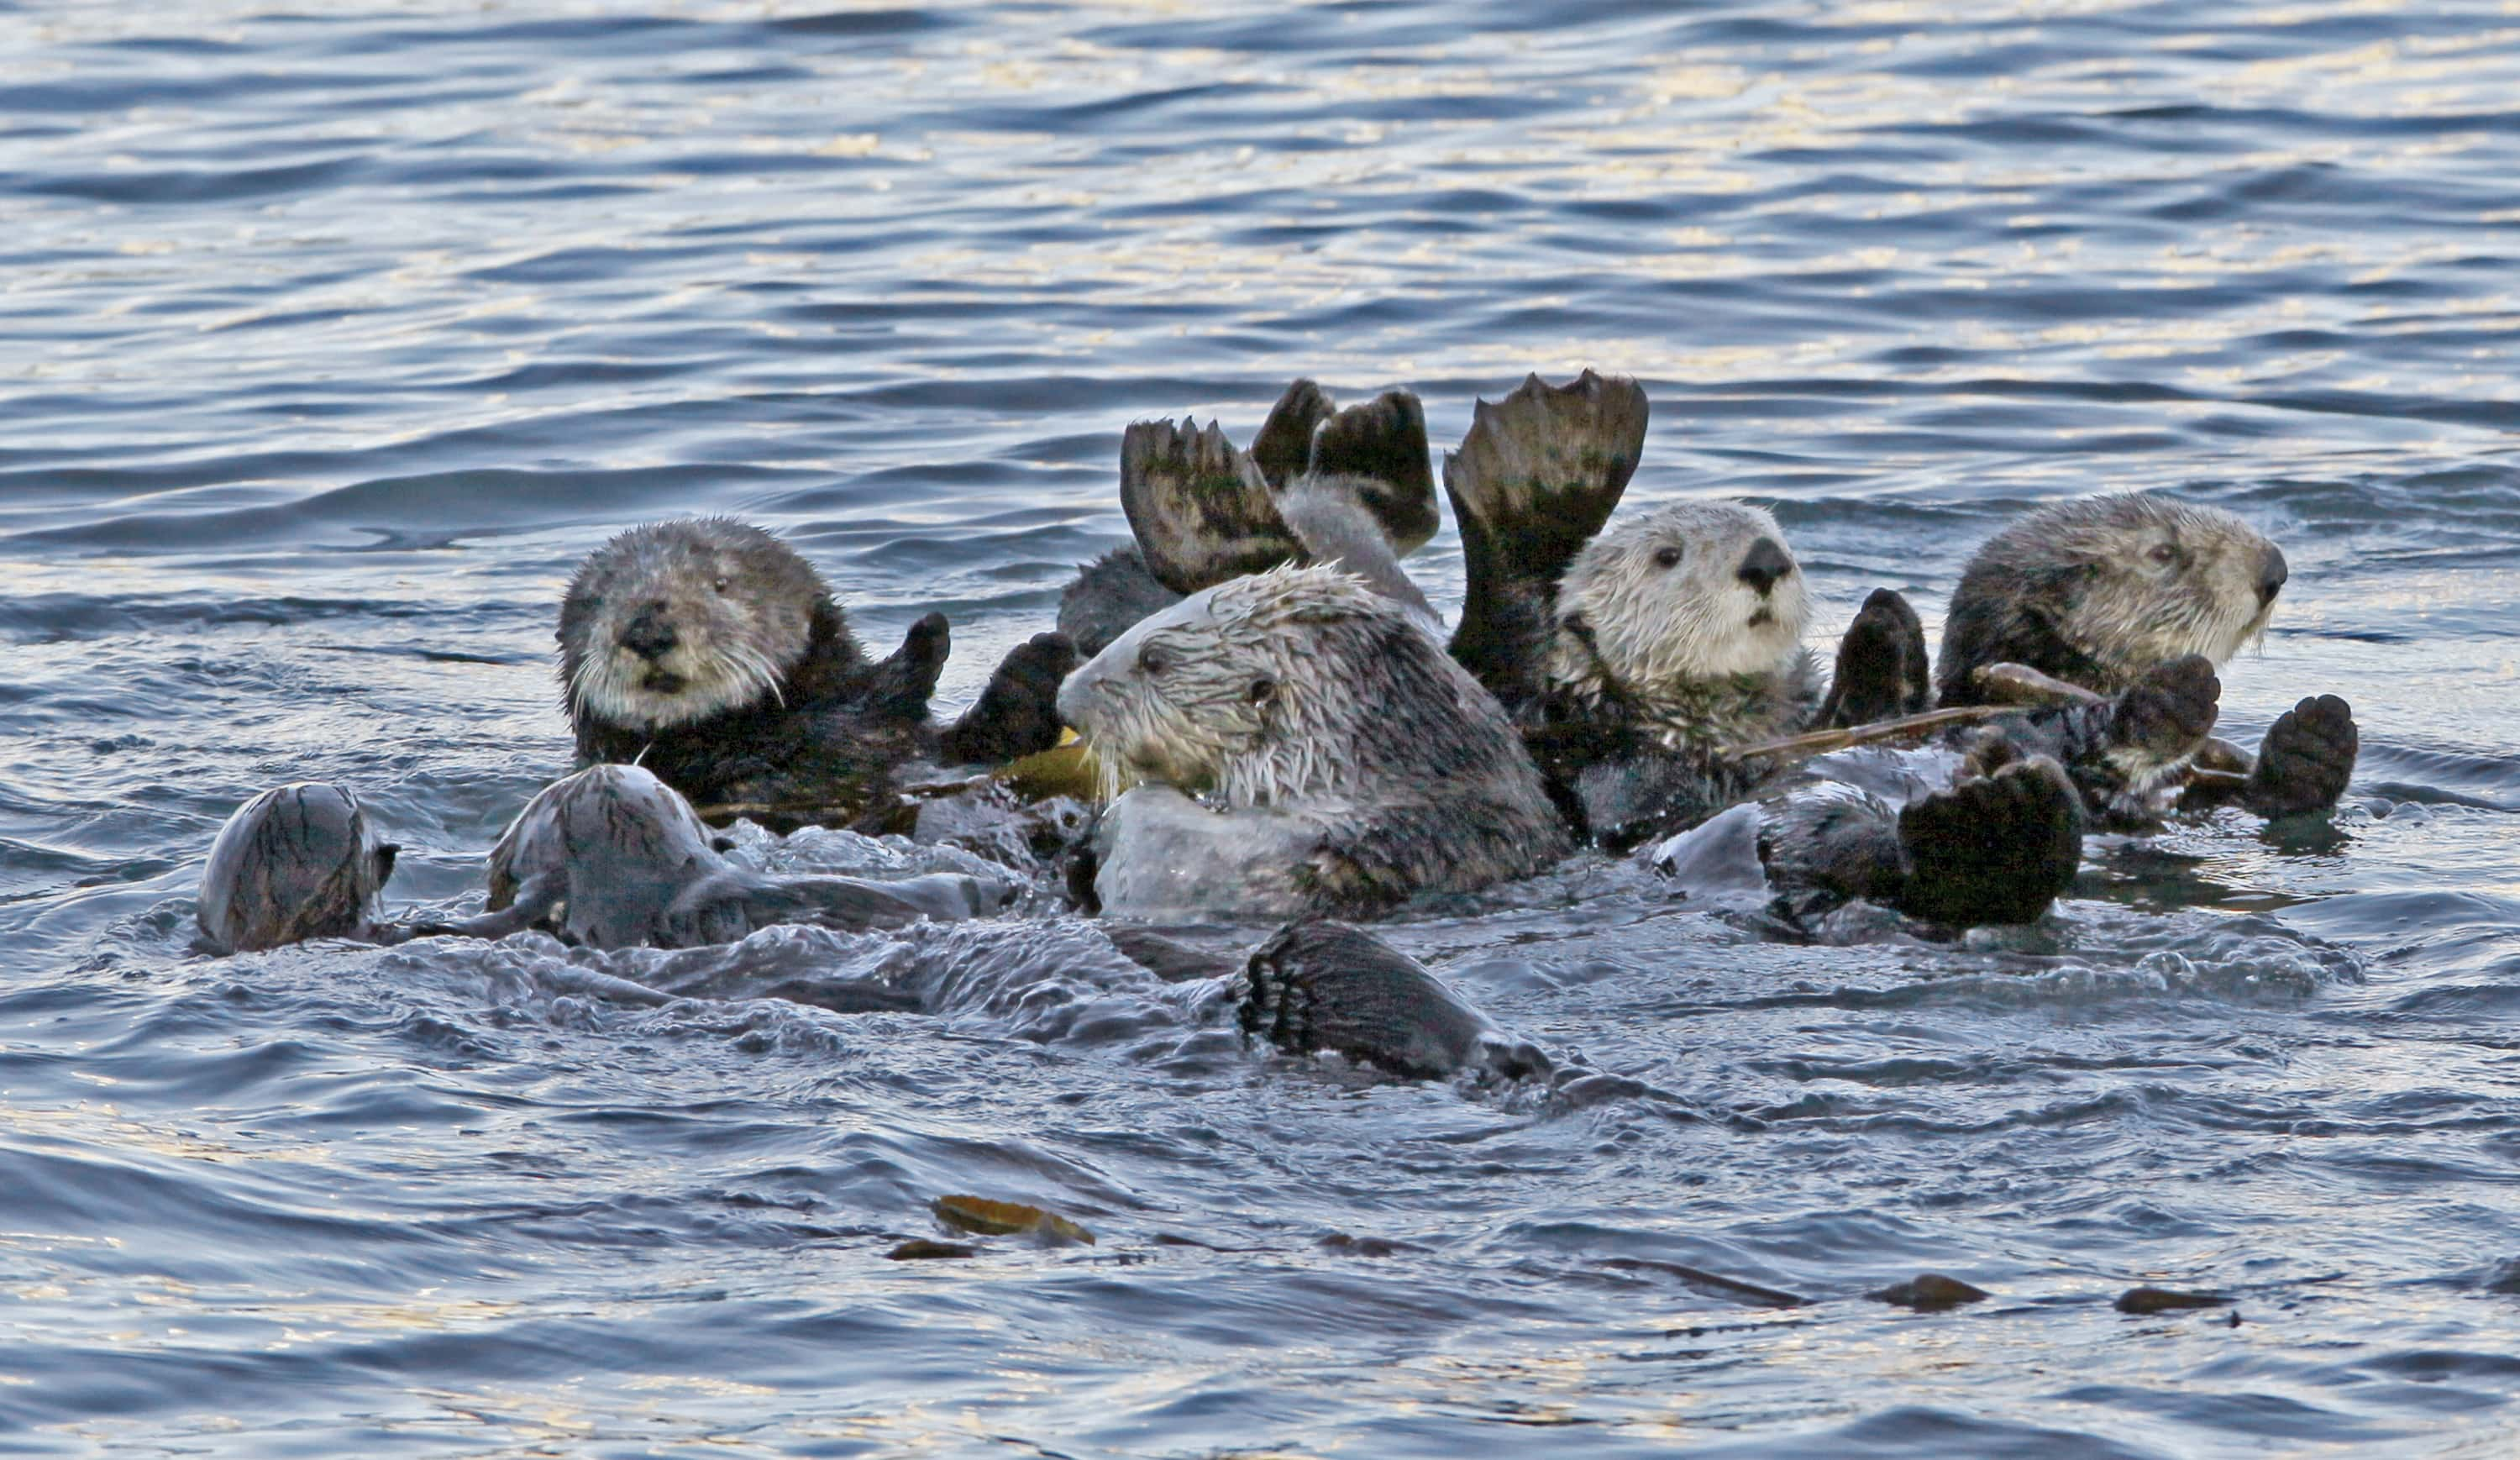 FILE - In this Jan. 15, 2010, file photo, a group of sea otters gather in Morro Bay, Calif. The U.S. Geological Survey said Monday, Sept. 19, 2016, that a recent count found sea otter numbers have exceeded 3,090 for the first time. If those numbers hold for the next two years, federal officials could consider removing the otter from Endangered Species Act protections. (AP Photo/Reed Saxon, file)